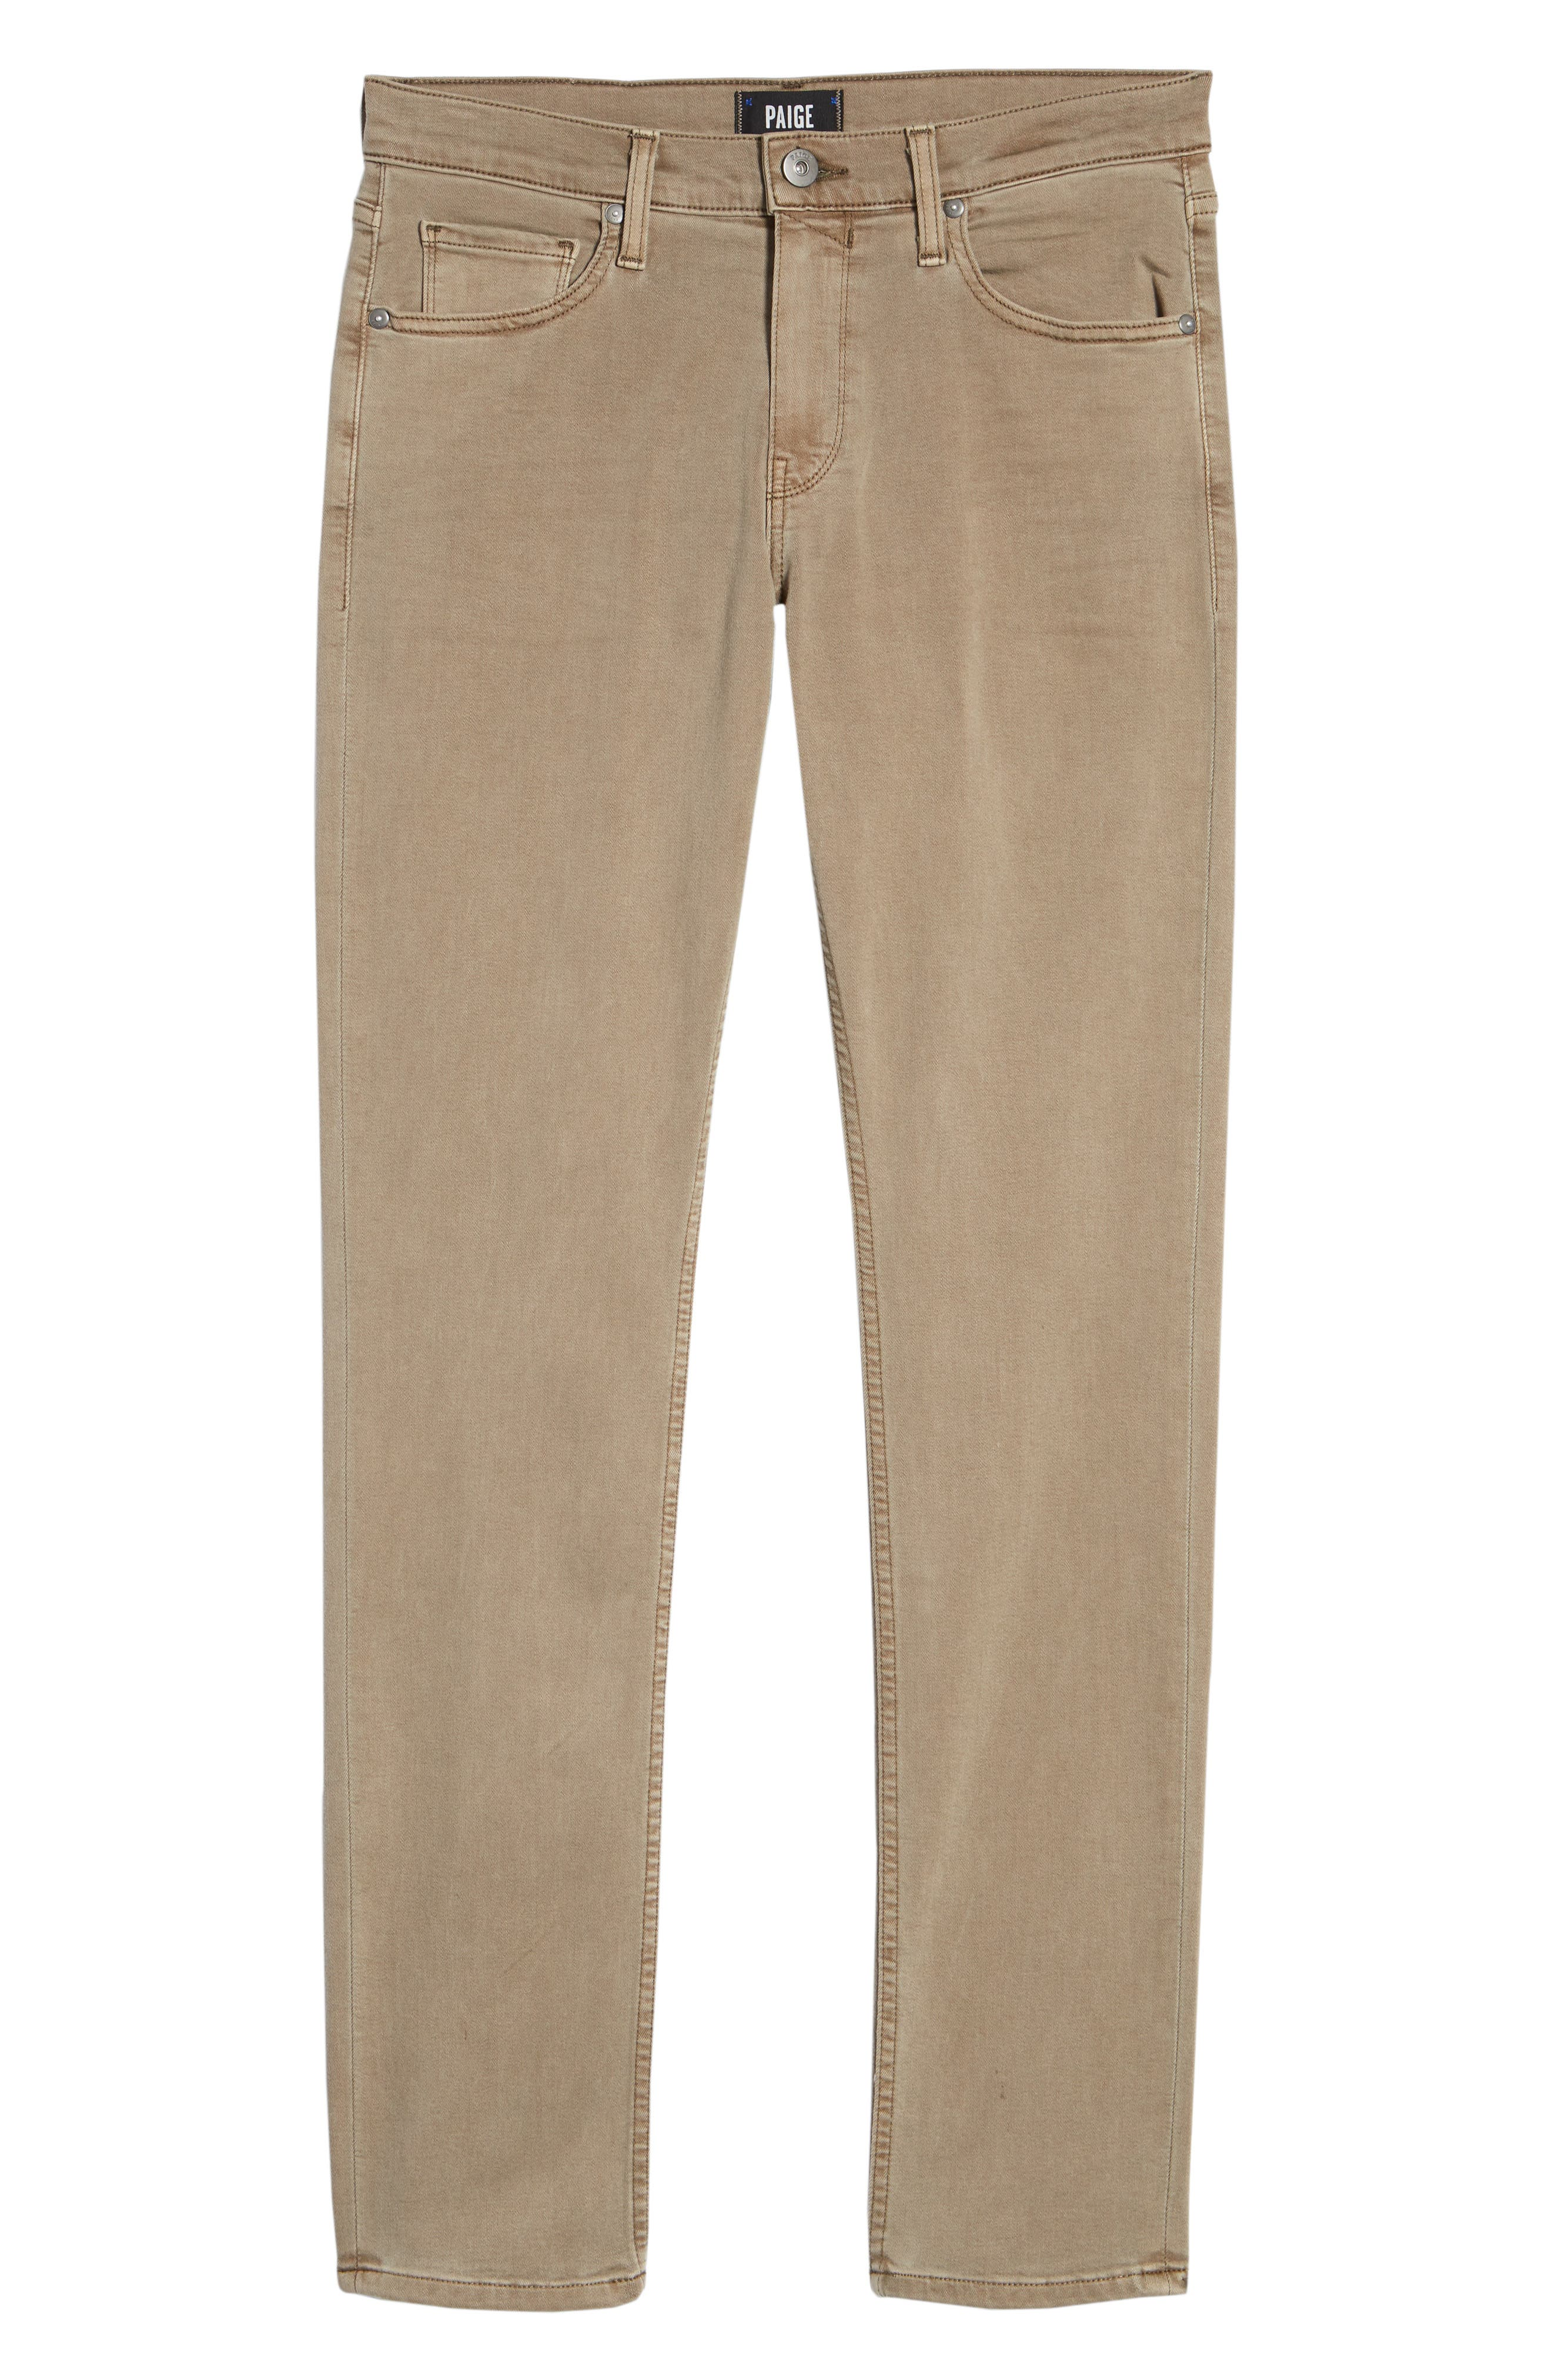 Transcend - Lennox Slim Fit Twill Pants,                             Alternate thumbnail 6, color,                             VINTAGE MUSHROOM